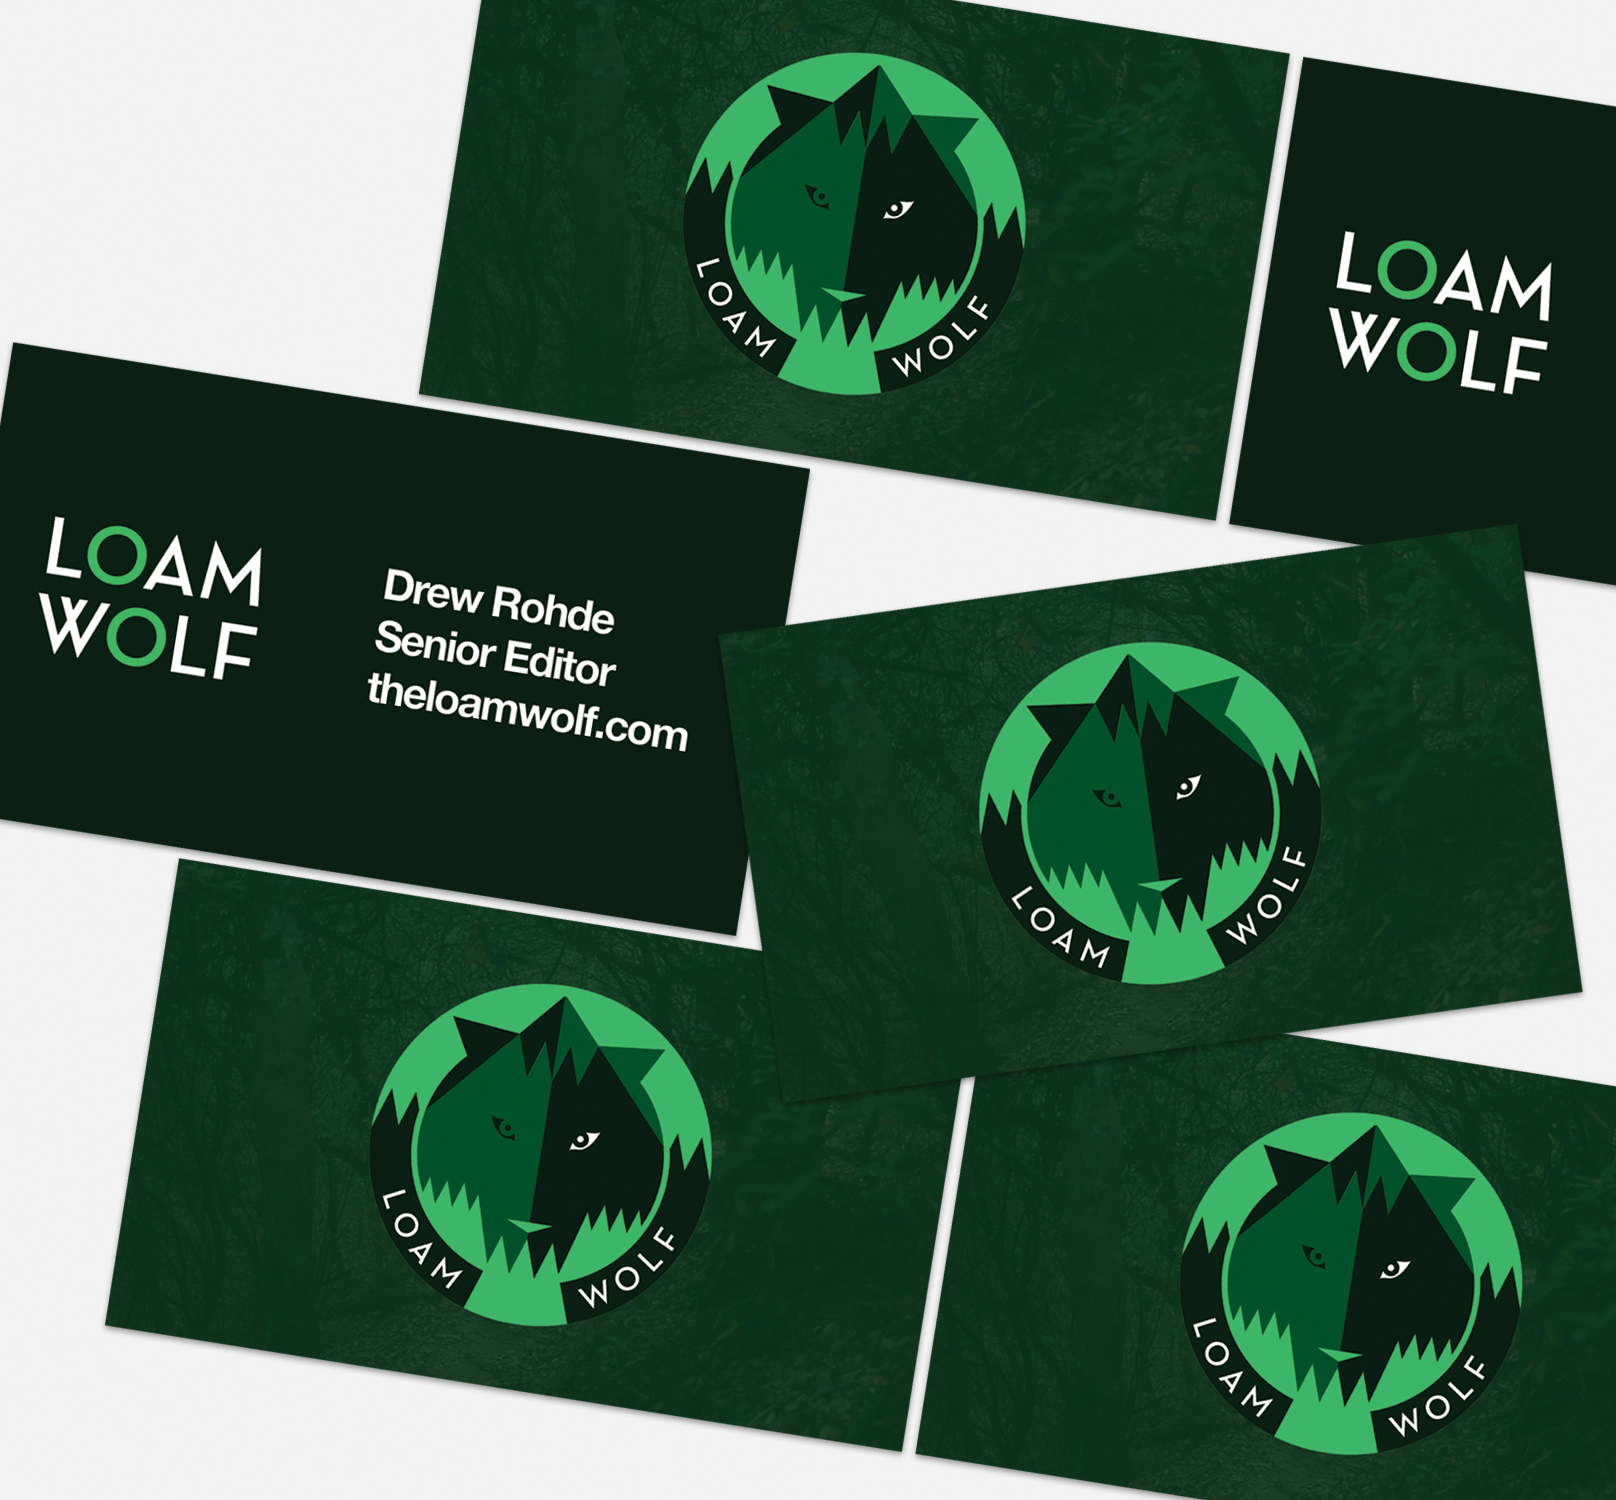 loamwolf-businesscard-sample